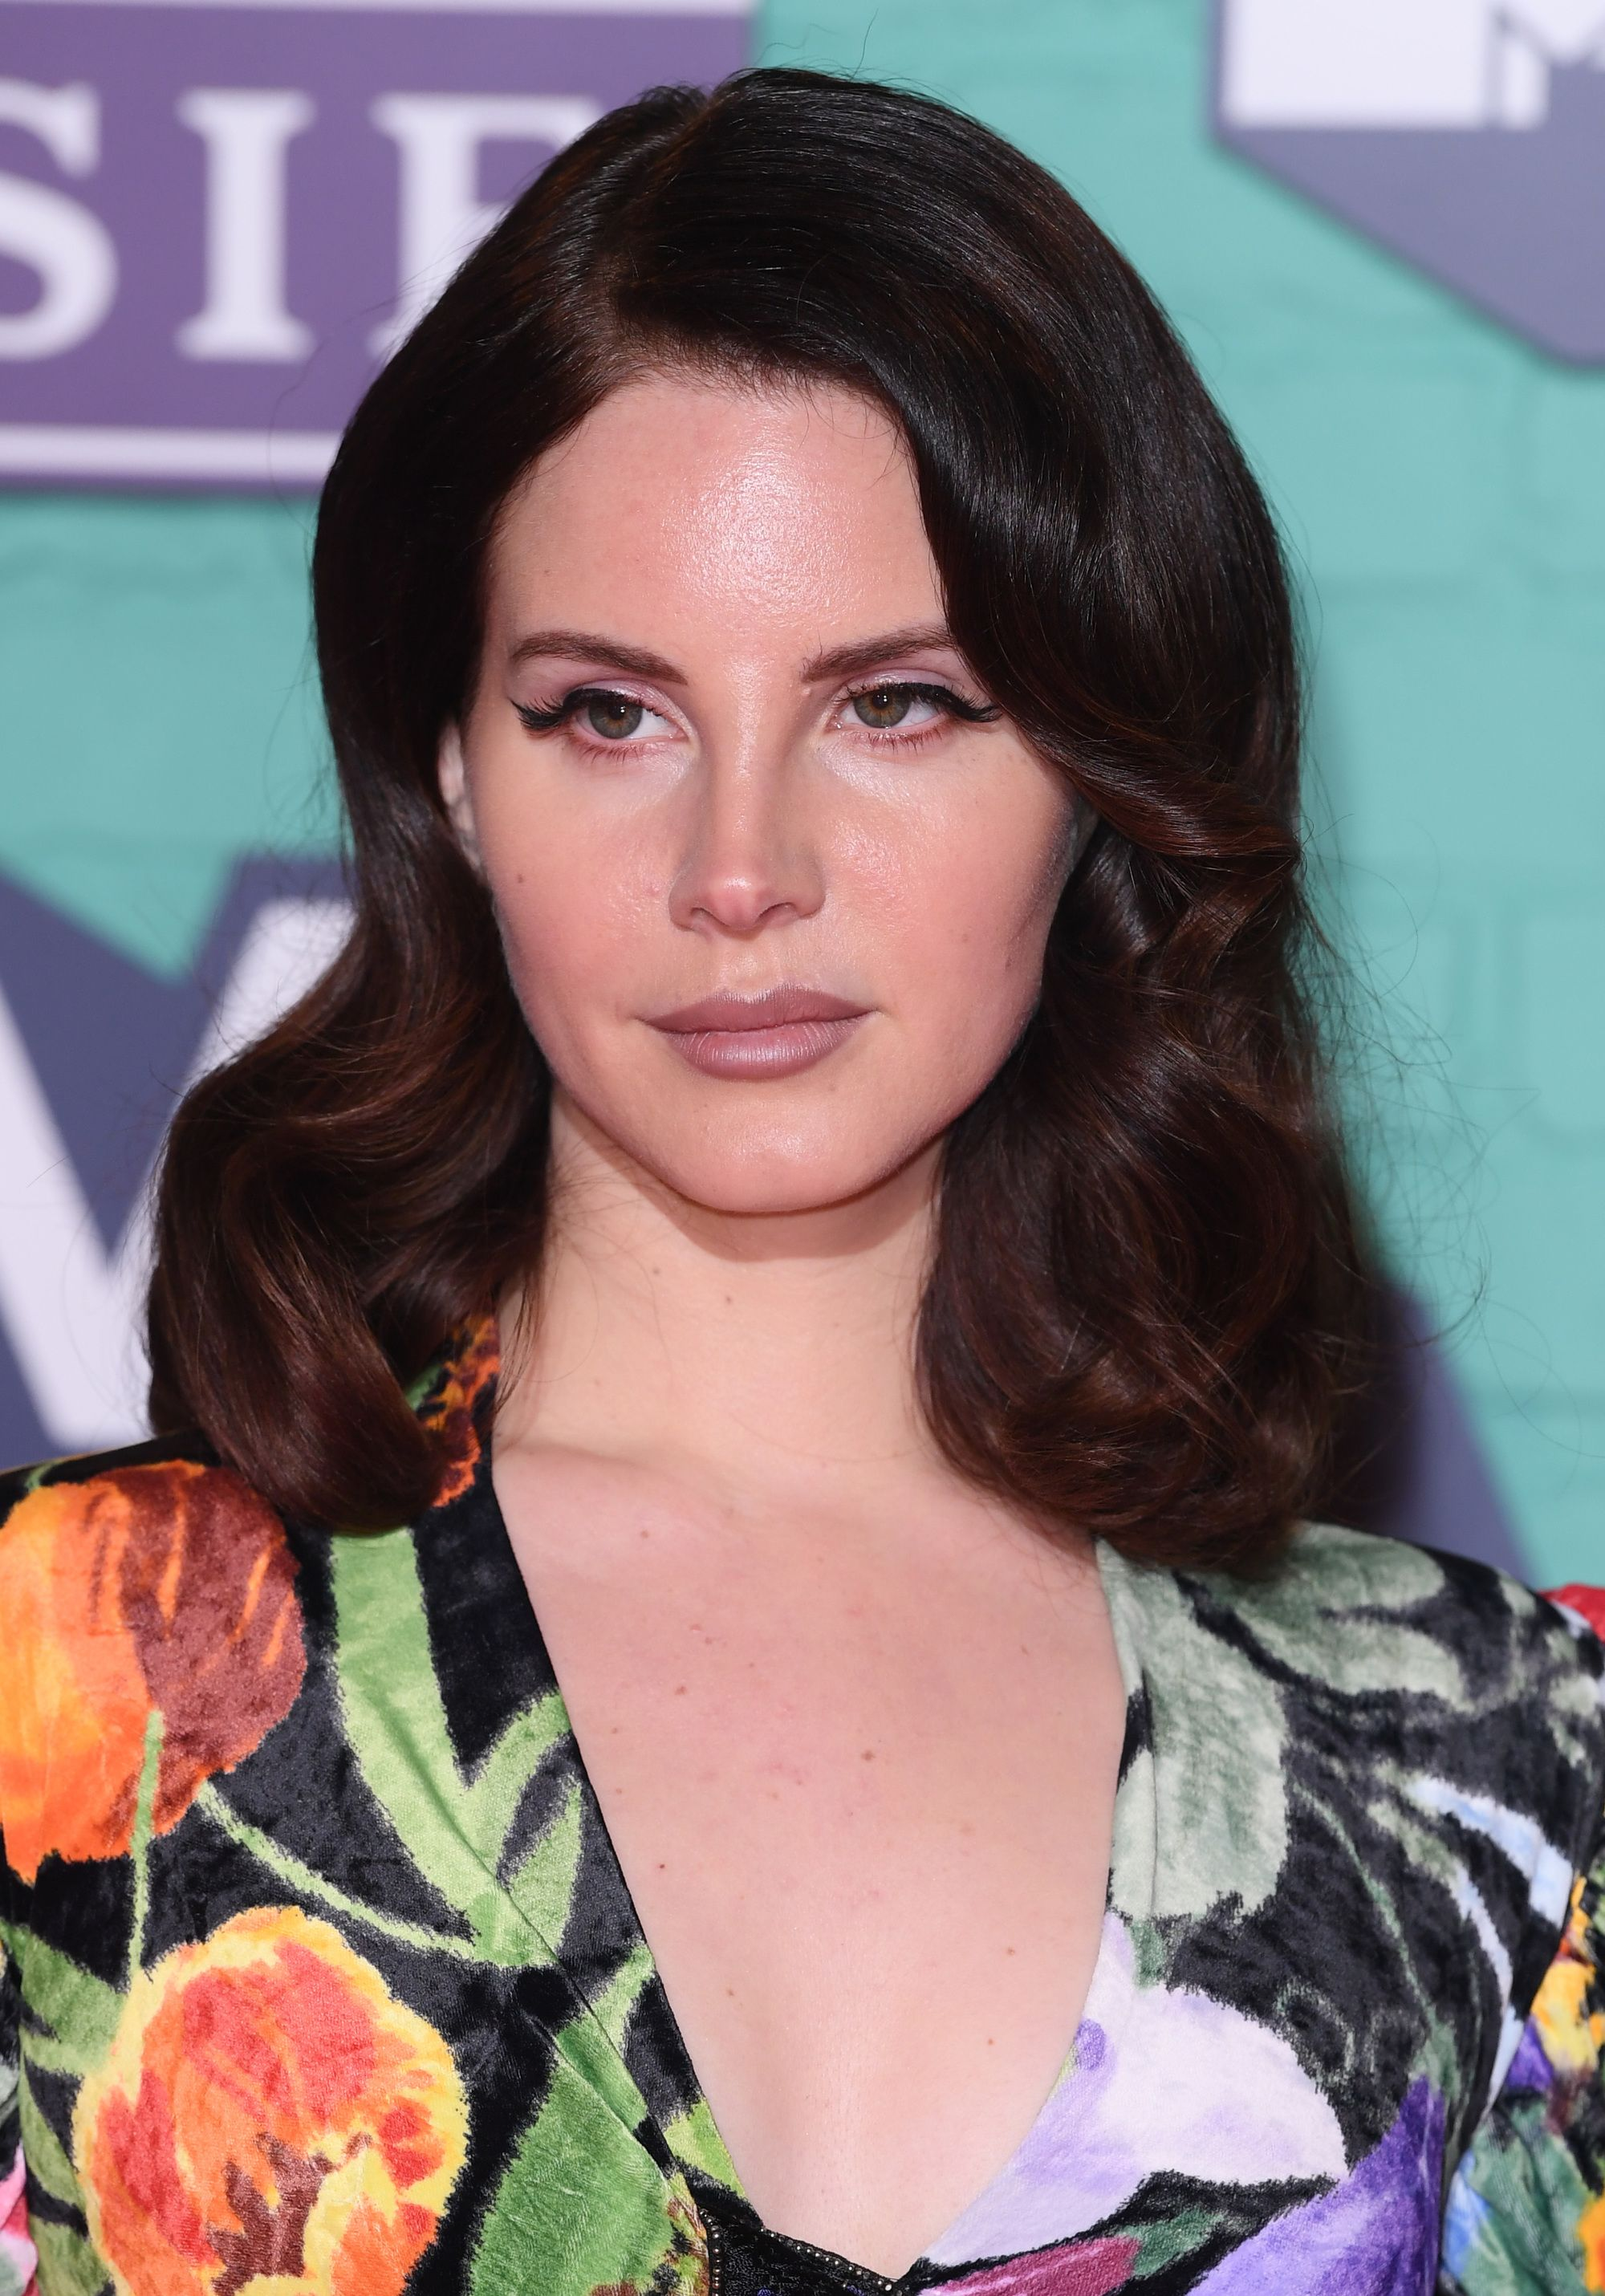 Lana Del Rey with brown medium length hair in side parted Hollywood waves at the 2017 MTV EMAs